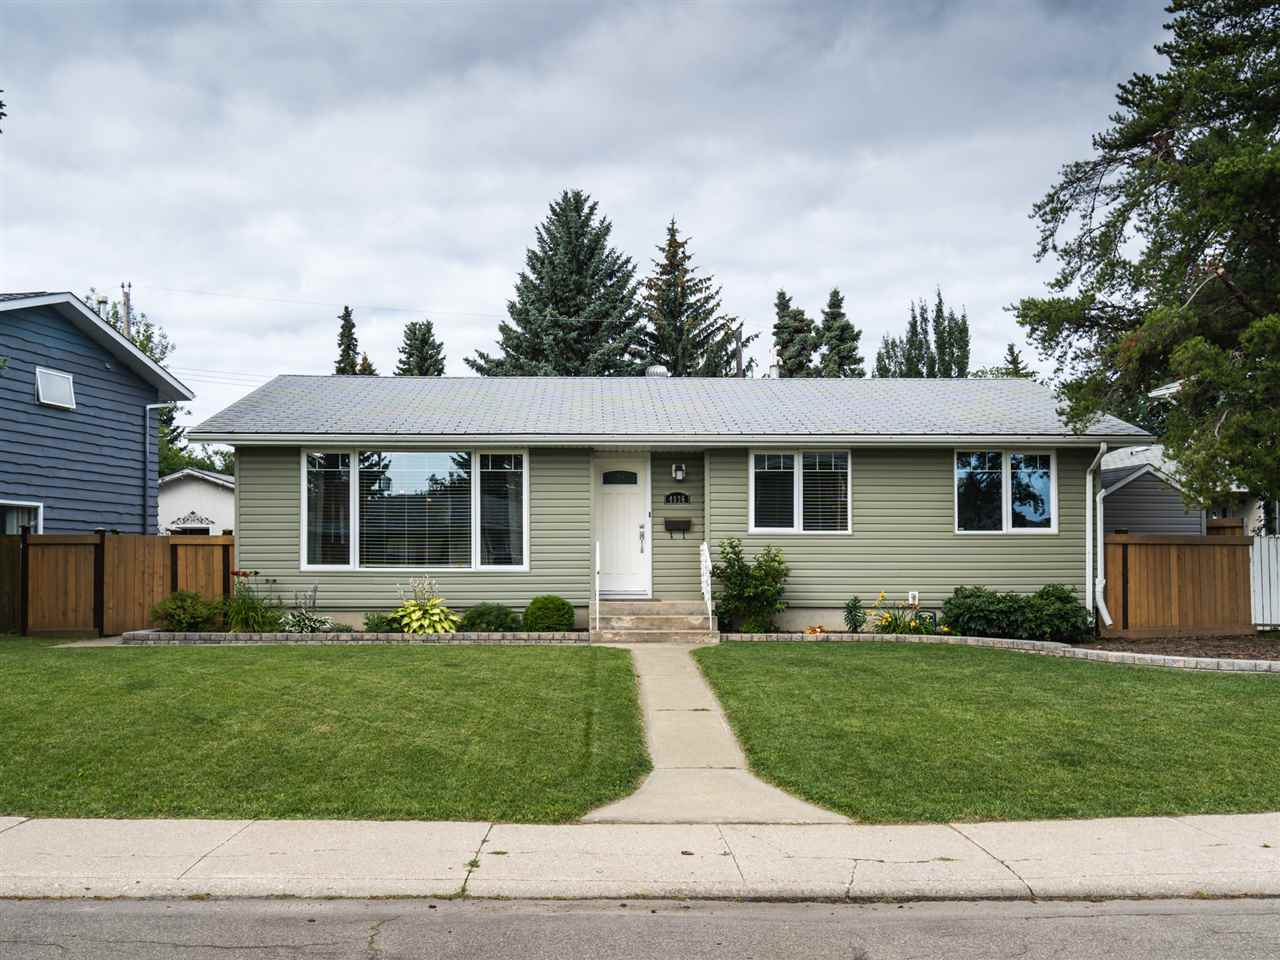 MLS® listing #E4170586 for sale located at 4036 120 Street